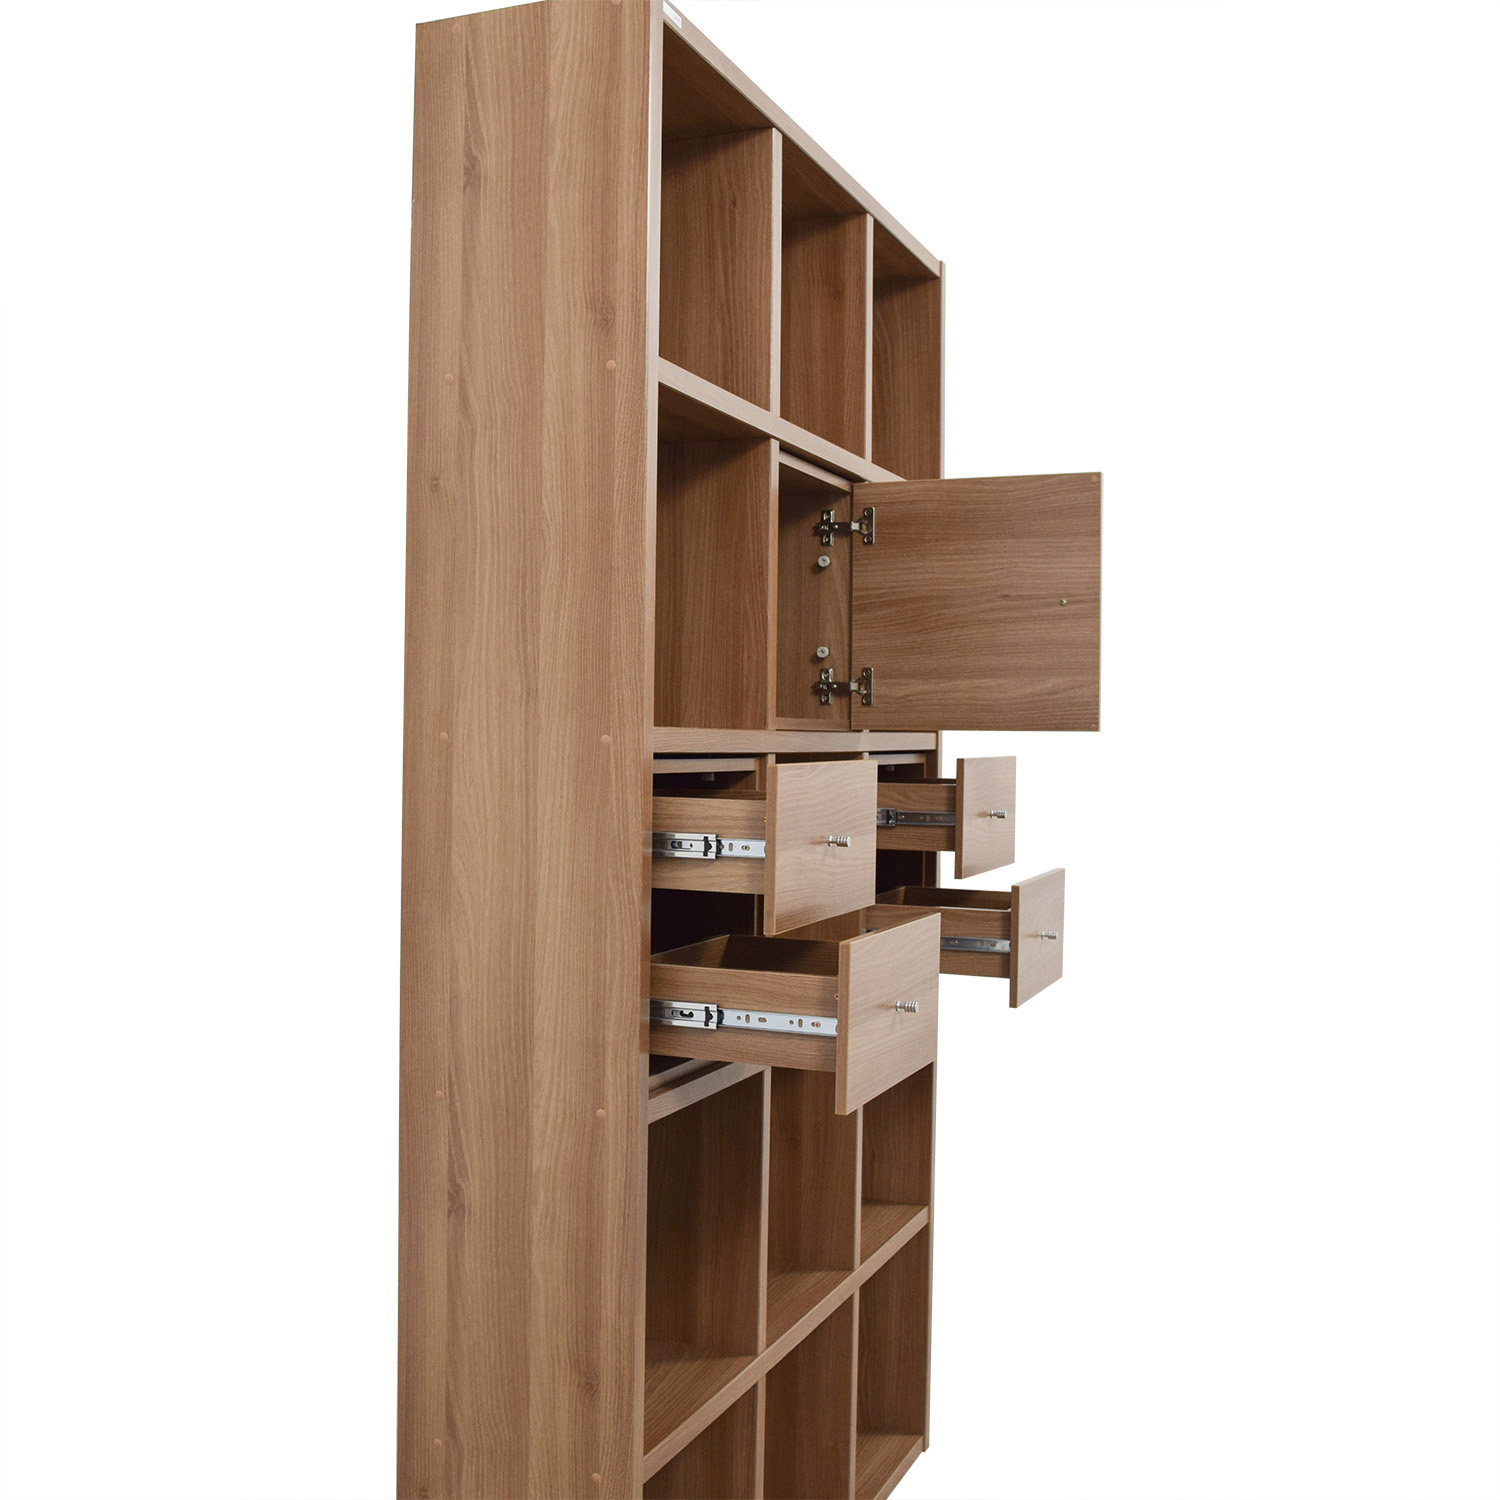 Hansaem Hansaem Natural Wood Bookshelf with Drawers and Storage coupon